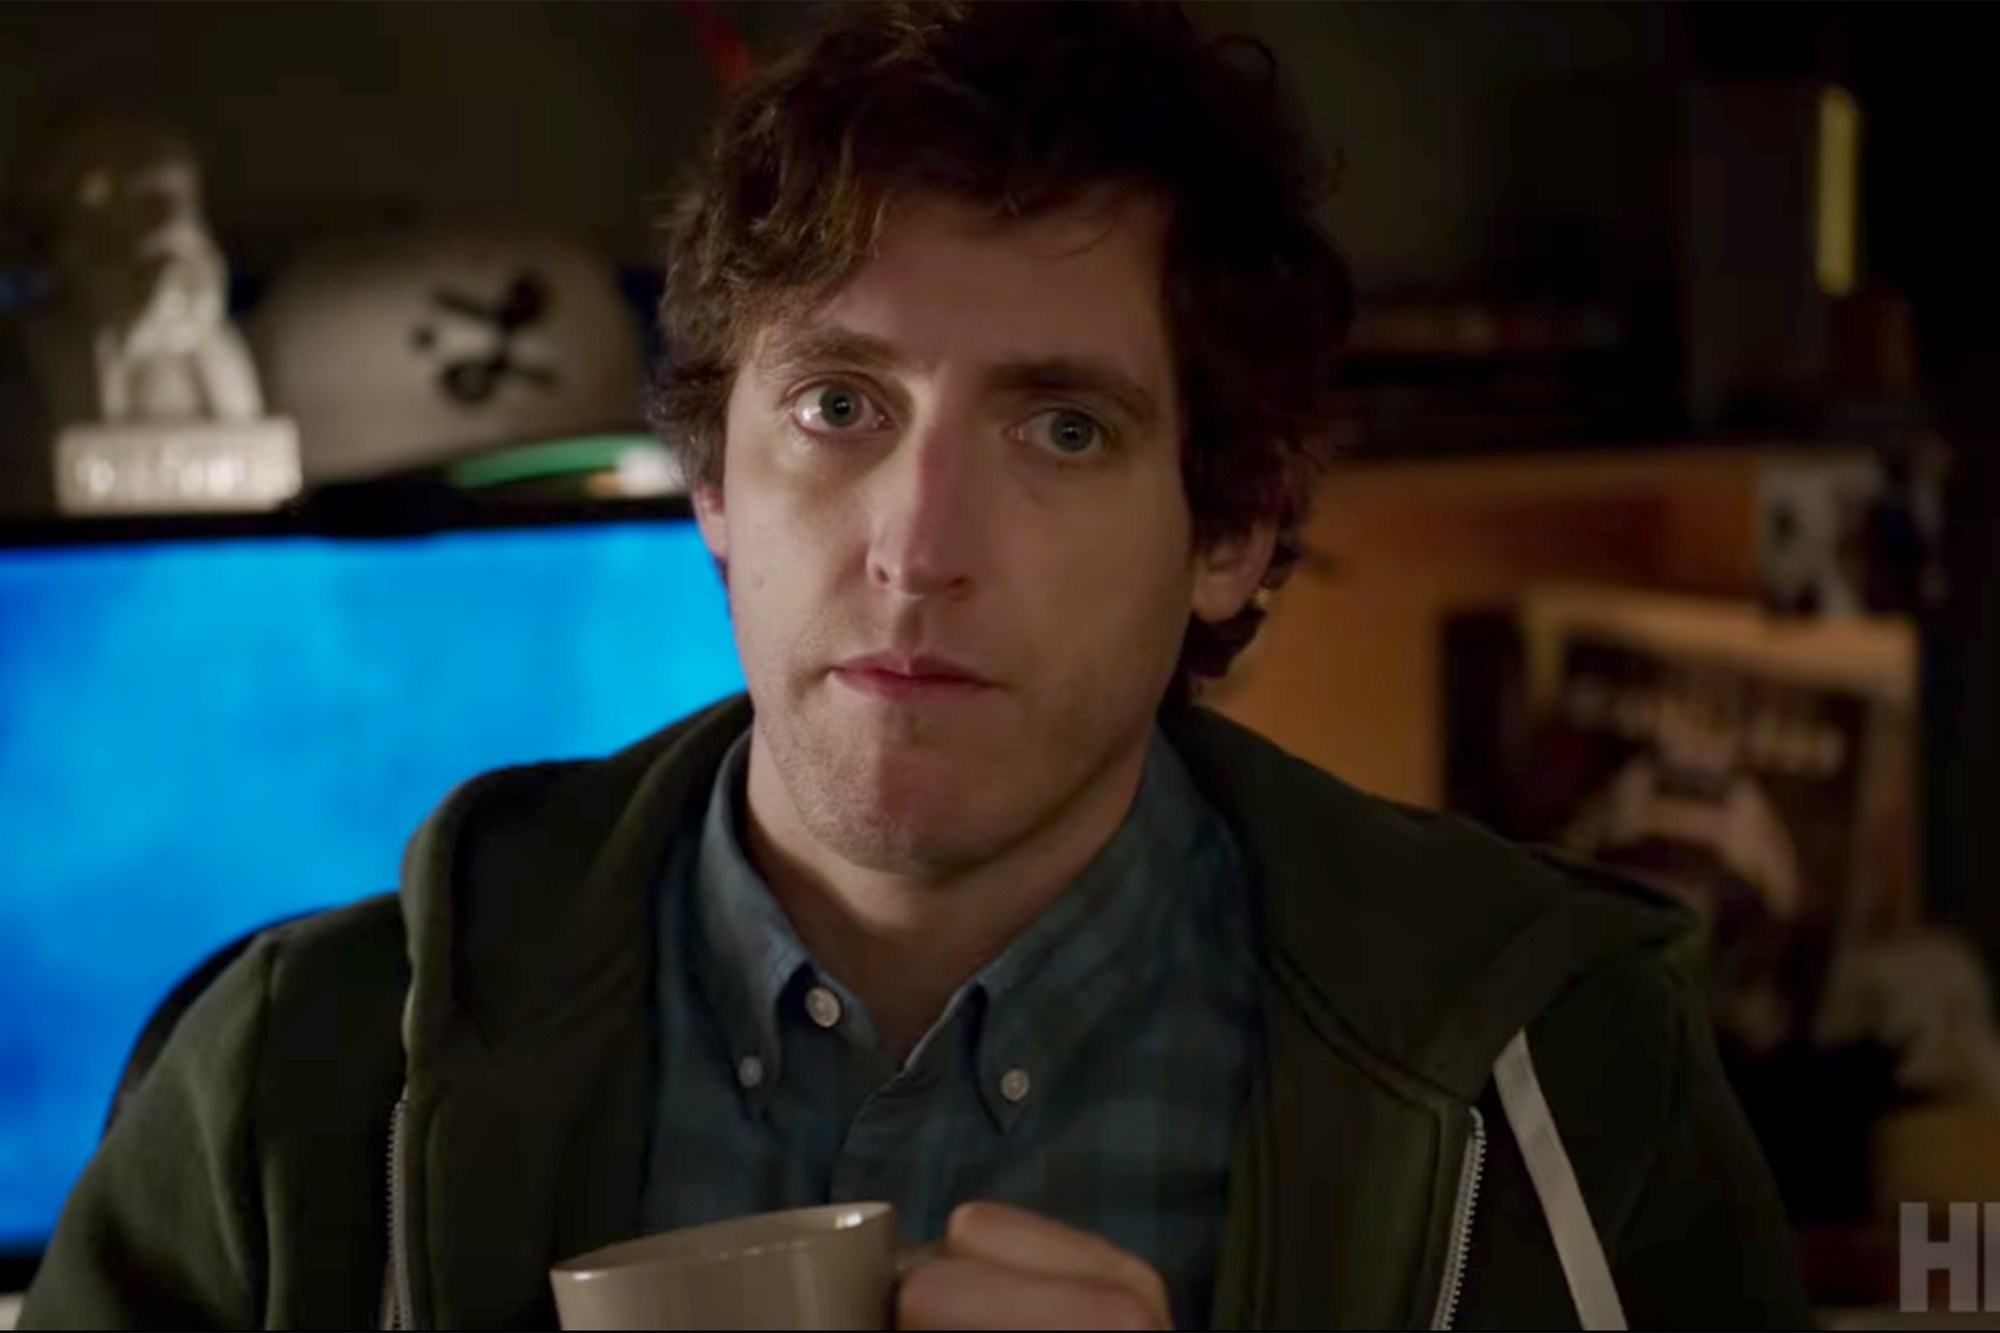 Silicon Valley Season 4 trailer screenshot